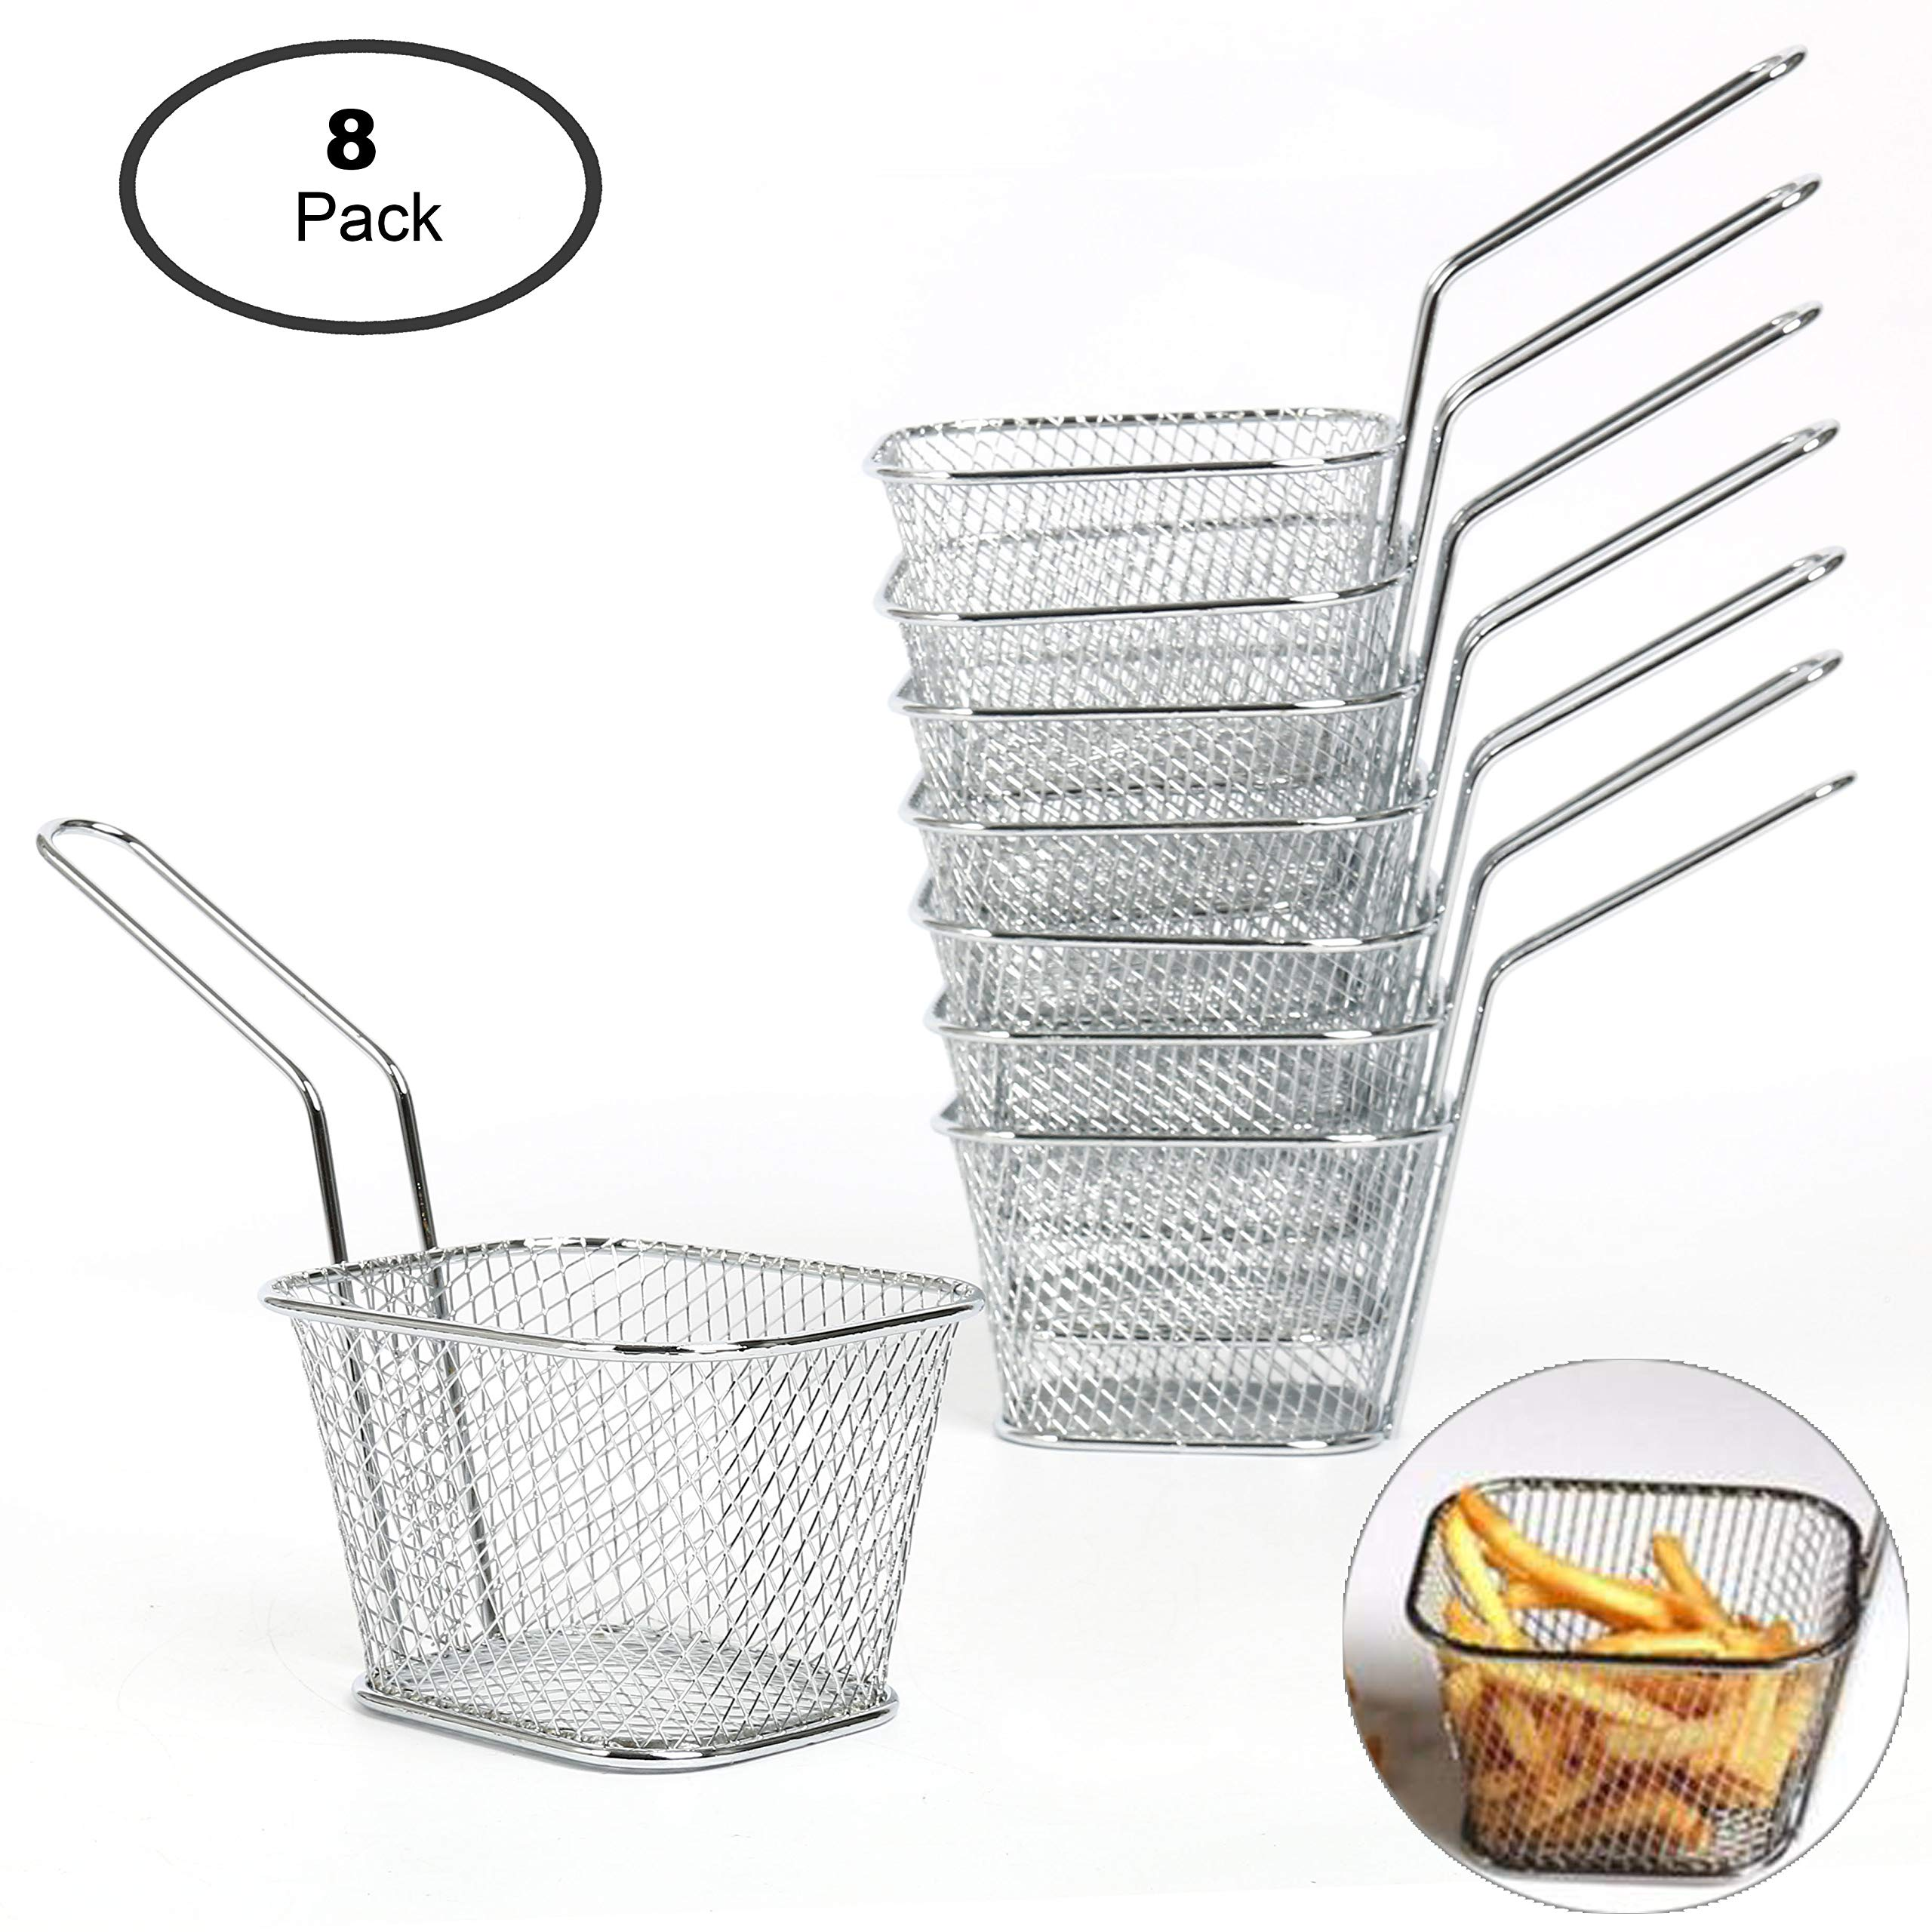 Yaekoo 8Pcs Mini Mesh Wire French Fry Chips Baskets Net Strainer Kitchen Cooking Tools by Yaekoo (Image #2)